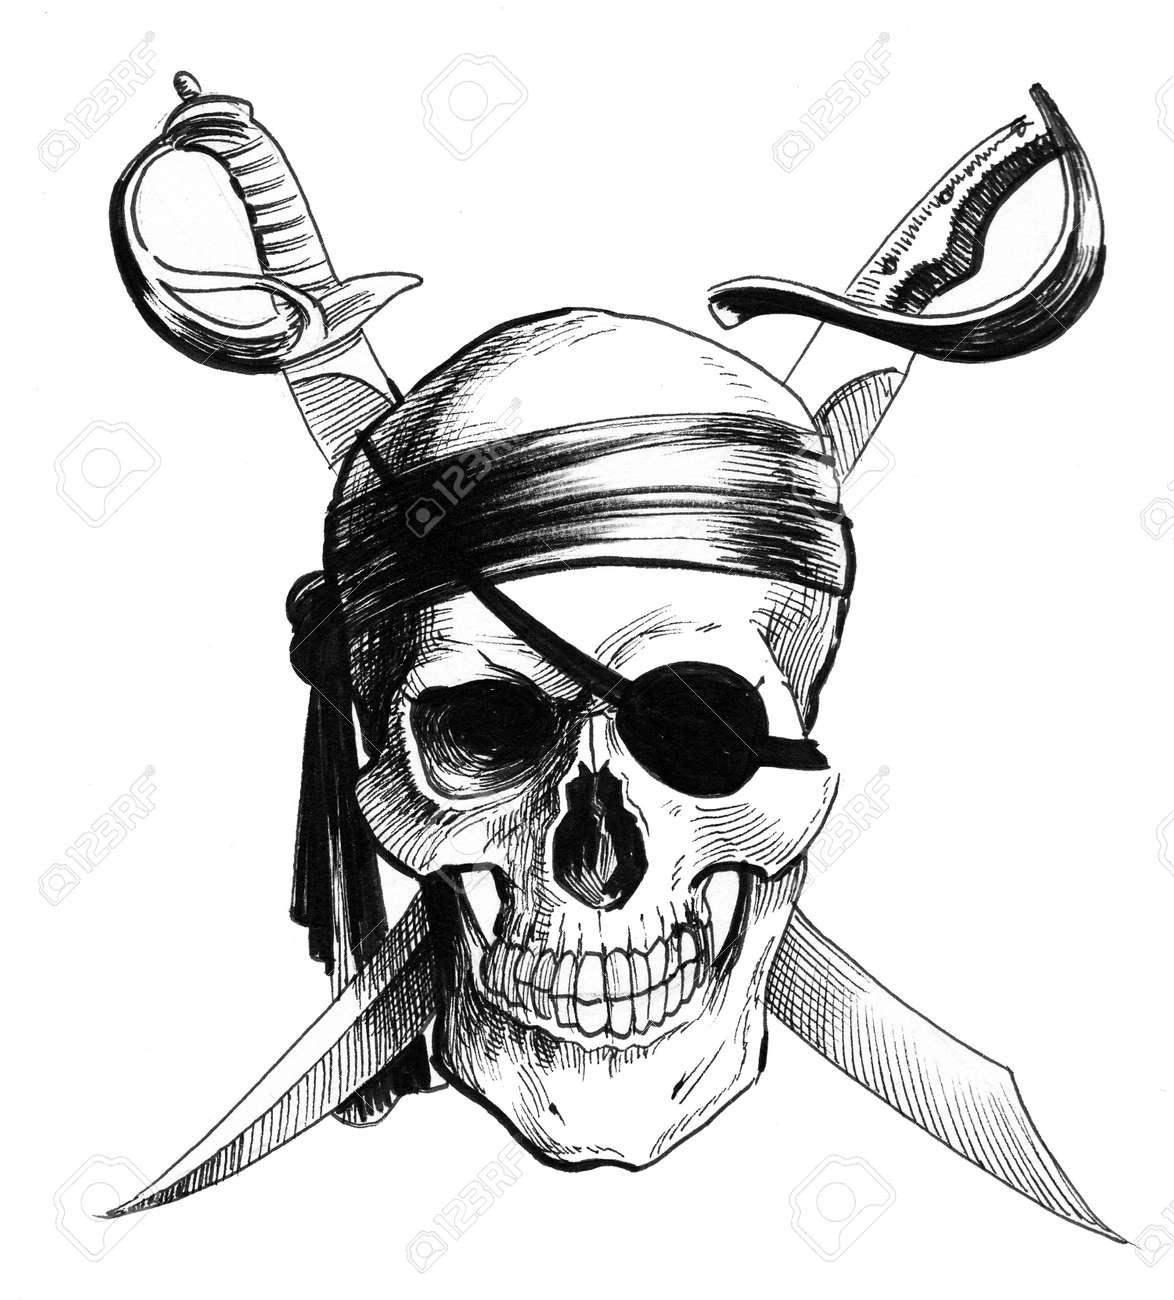 Pirate skull and crossed sables. Ink black and white illustration - 137305790